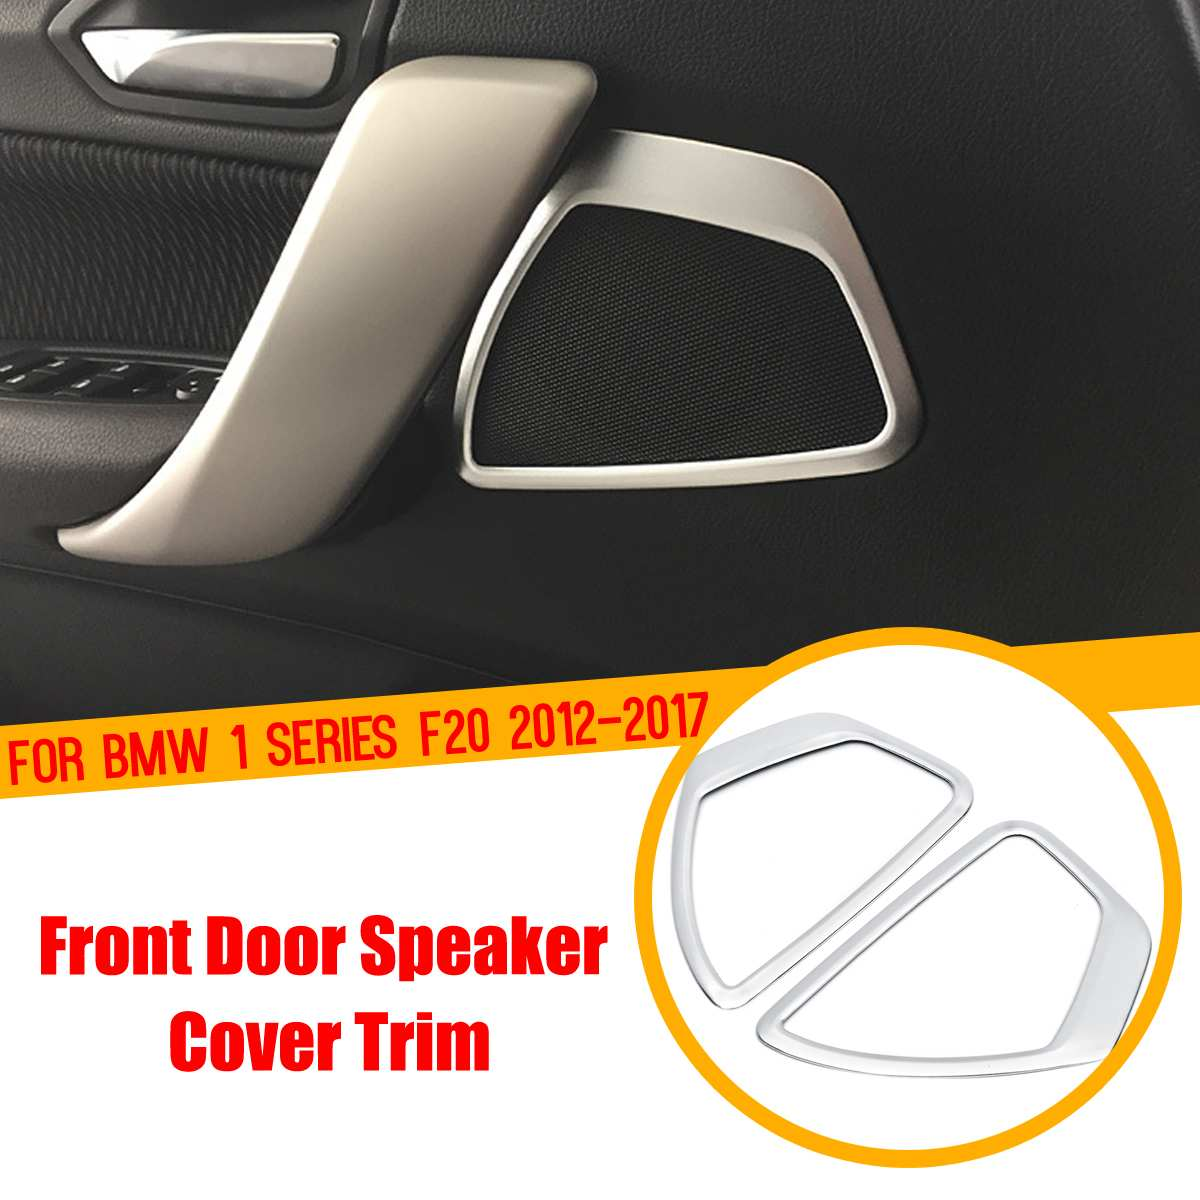 For BMW 1 Series F20 2012 2017 Stainless steel Car Front Door Audio Speaker Strip StereoDecal